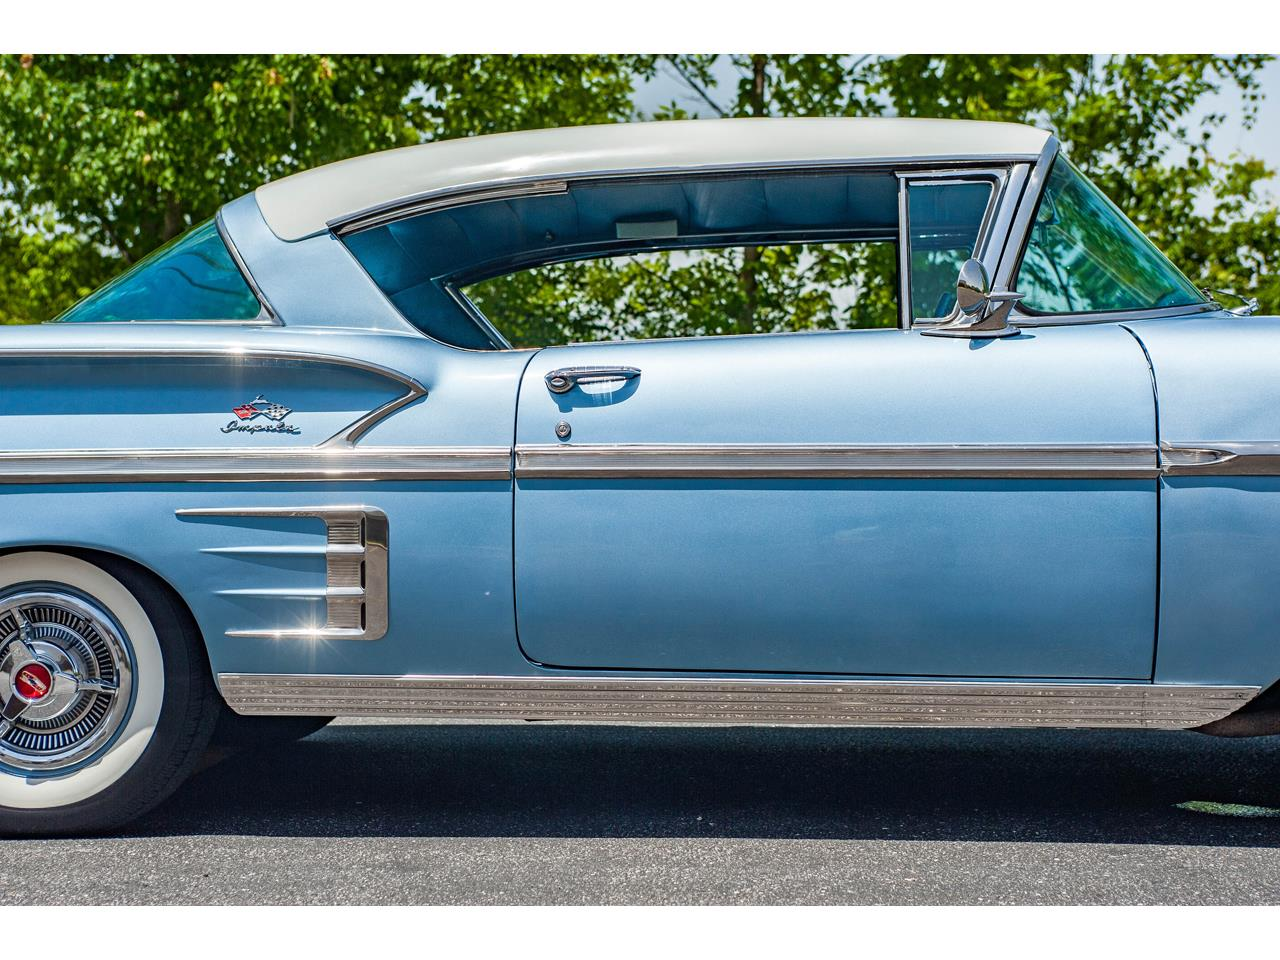 Large Picture of Classic '58 Impala located in O'Fallon Illinois Offered by Gateway Classic Cars - St. Louis - QB9Q